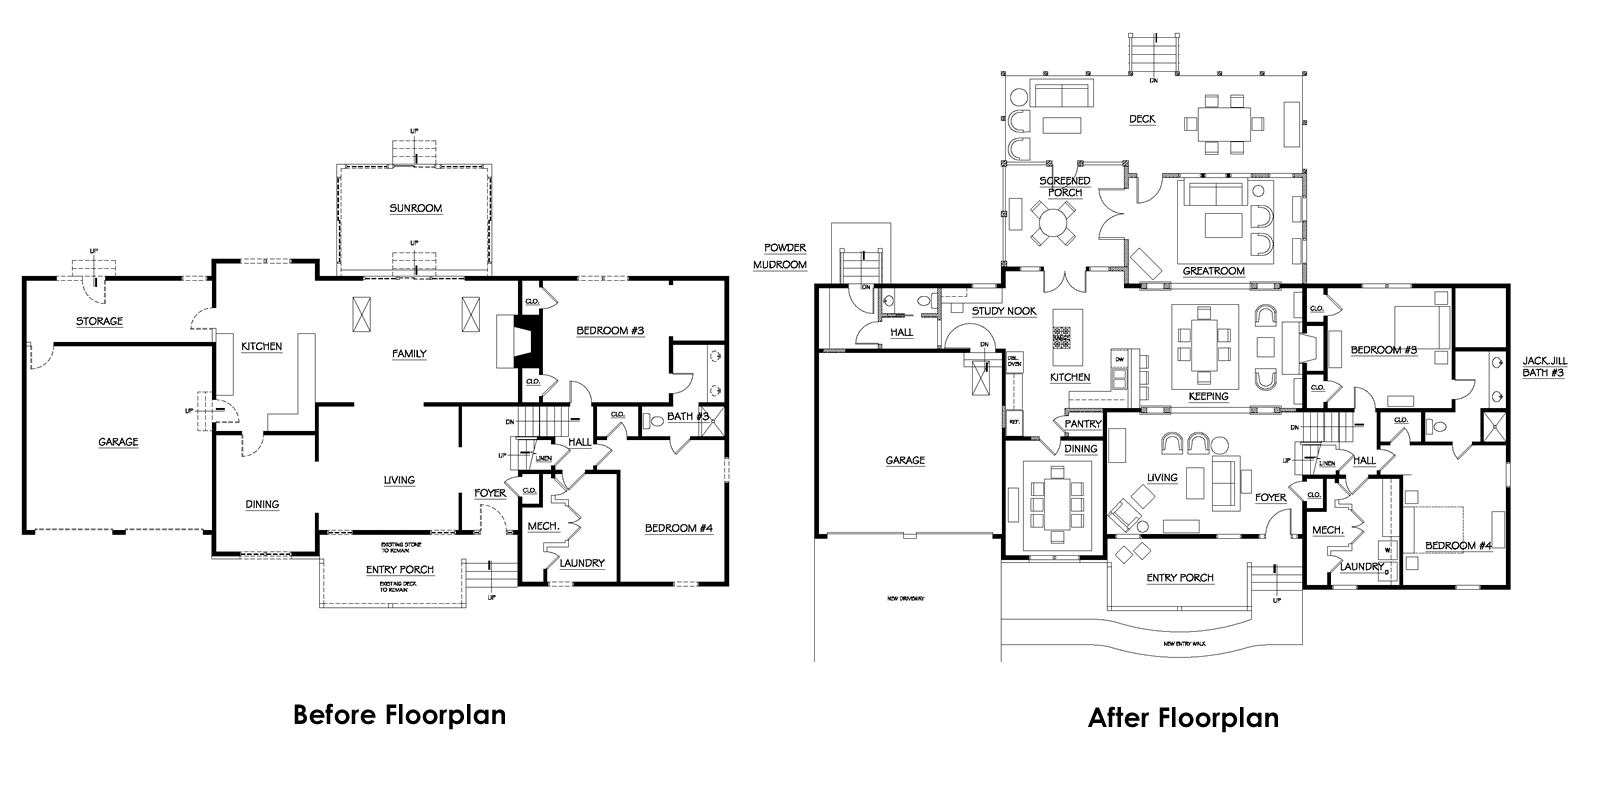 Dhsw70503 additionally Build underground house plans in addition 1 Story House Plans With Mother In Law Suite furthermore 2 Story House Plumbing Vent Diagram also Simple House Plans With Two Bedrooms. on ranch home addition floor plans